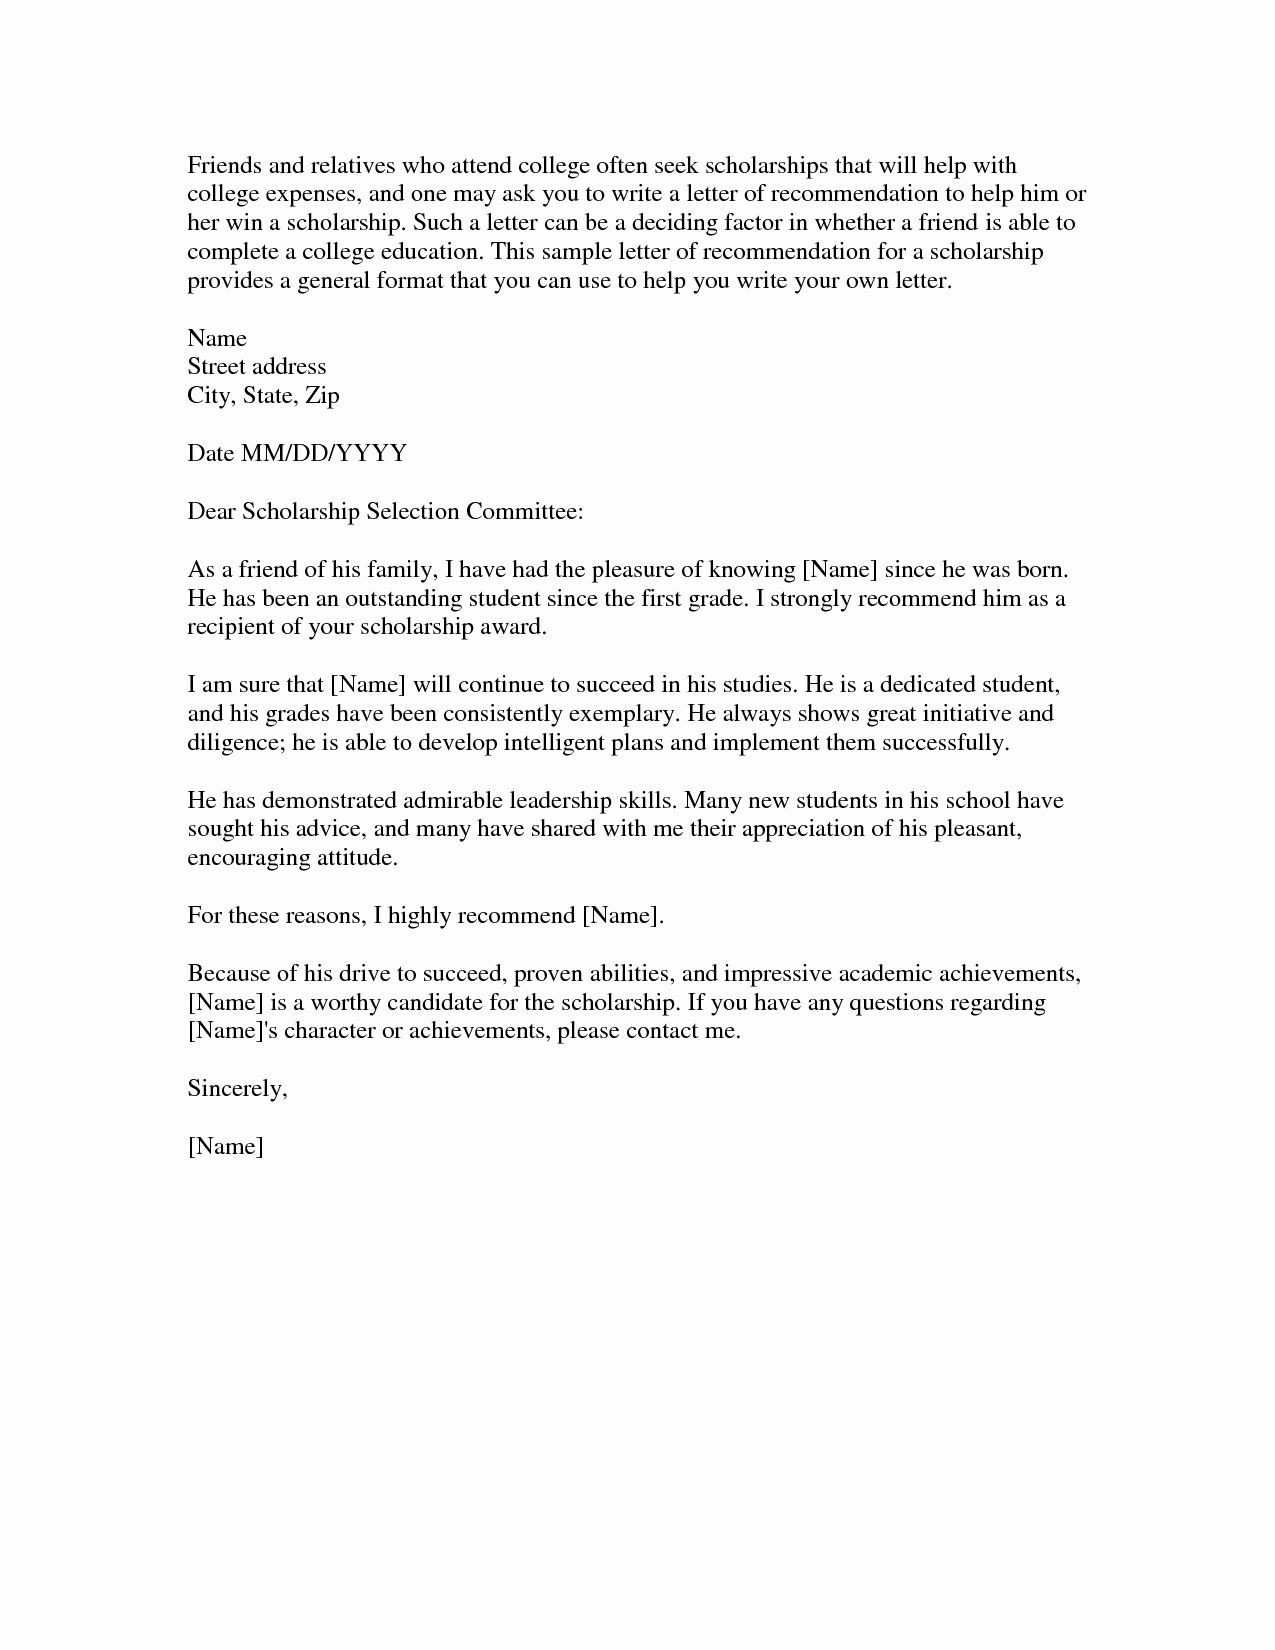 nih letter of sample luxury advertising account director resume format in word file download free skills for customer service on